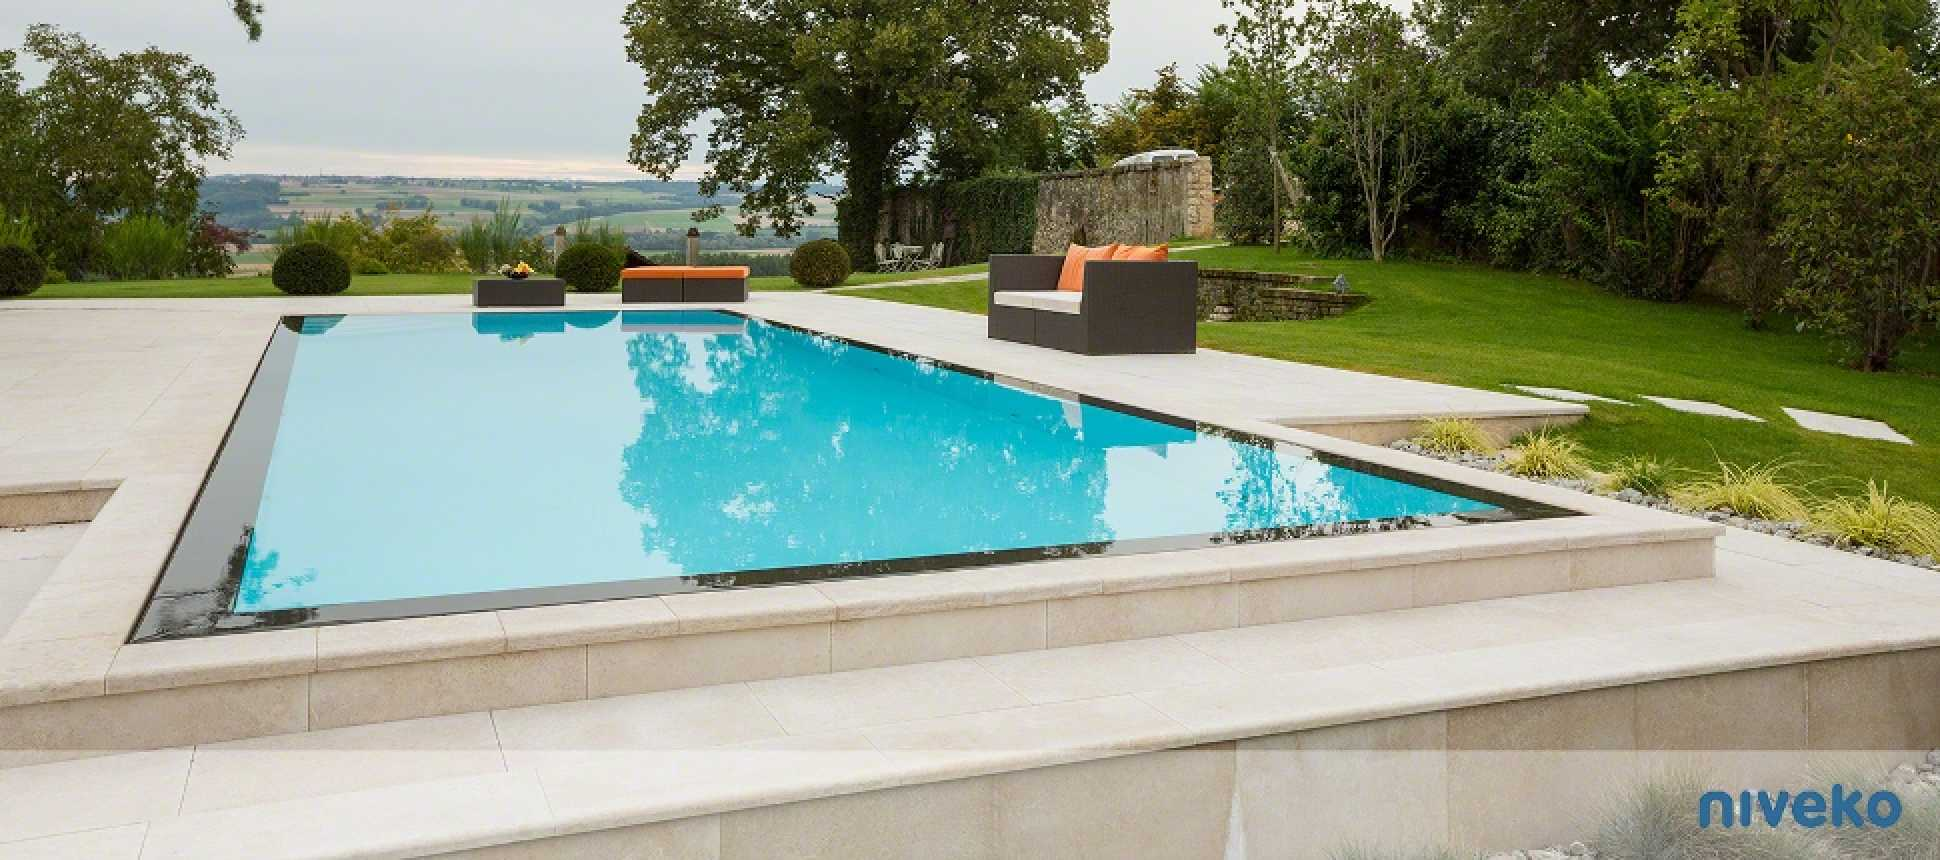 Pool Ecken Reinigen Niveko Pools Polystone Becken Pp Pools Polypropylen Becken Ac